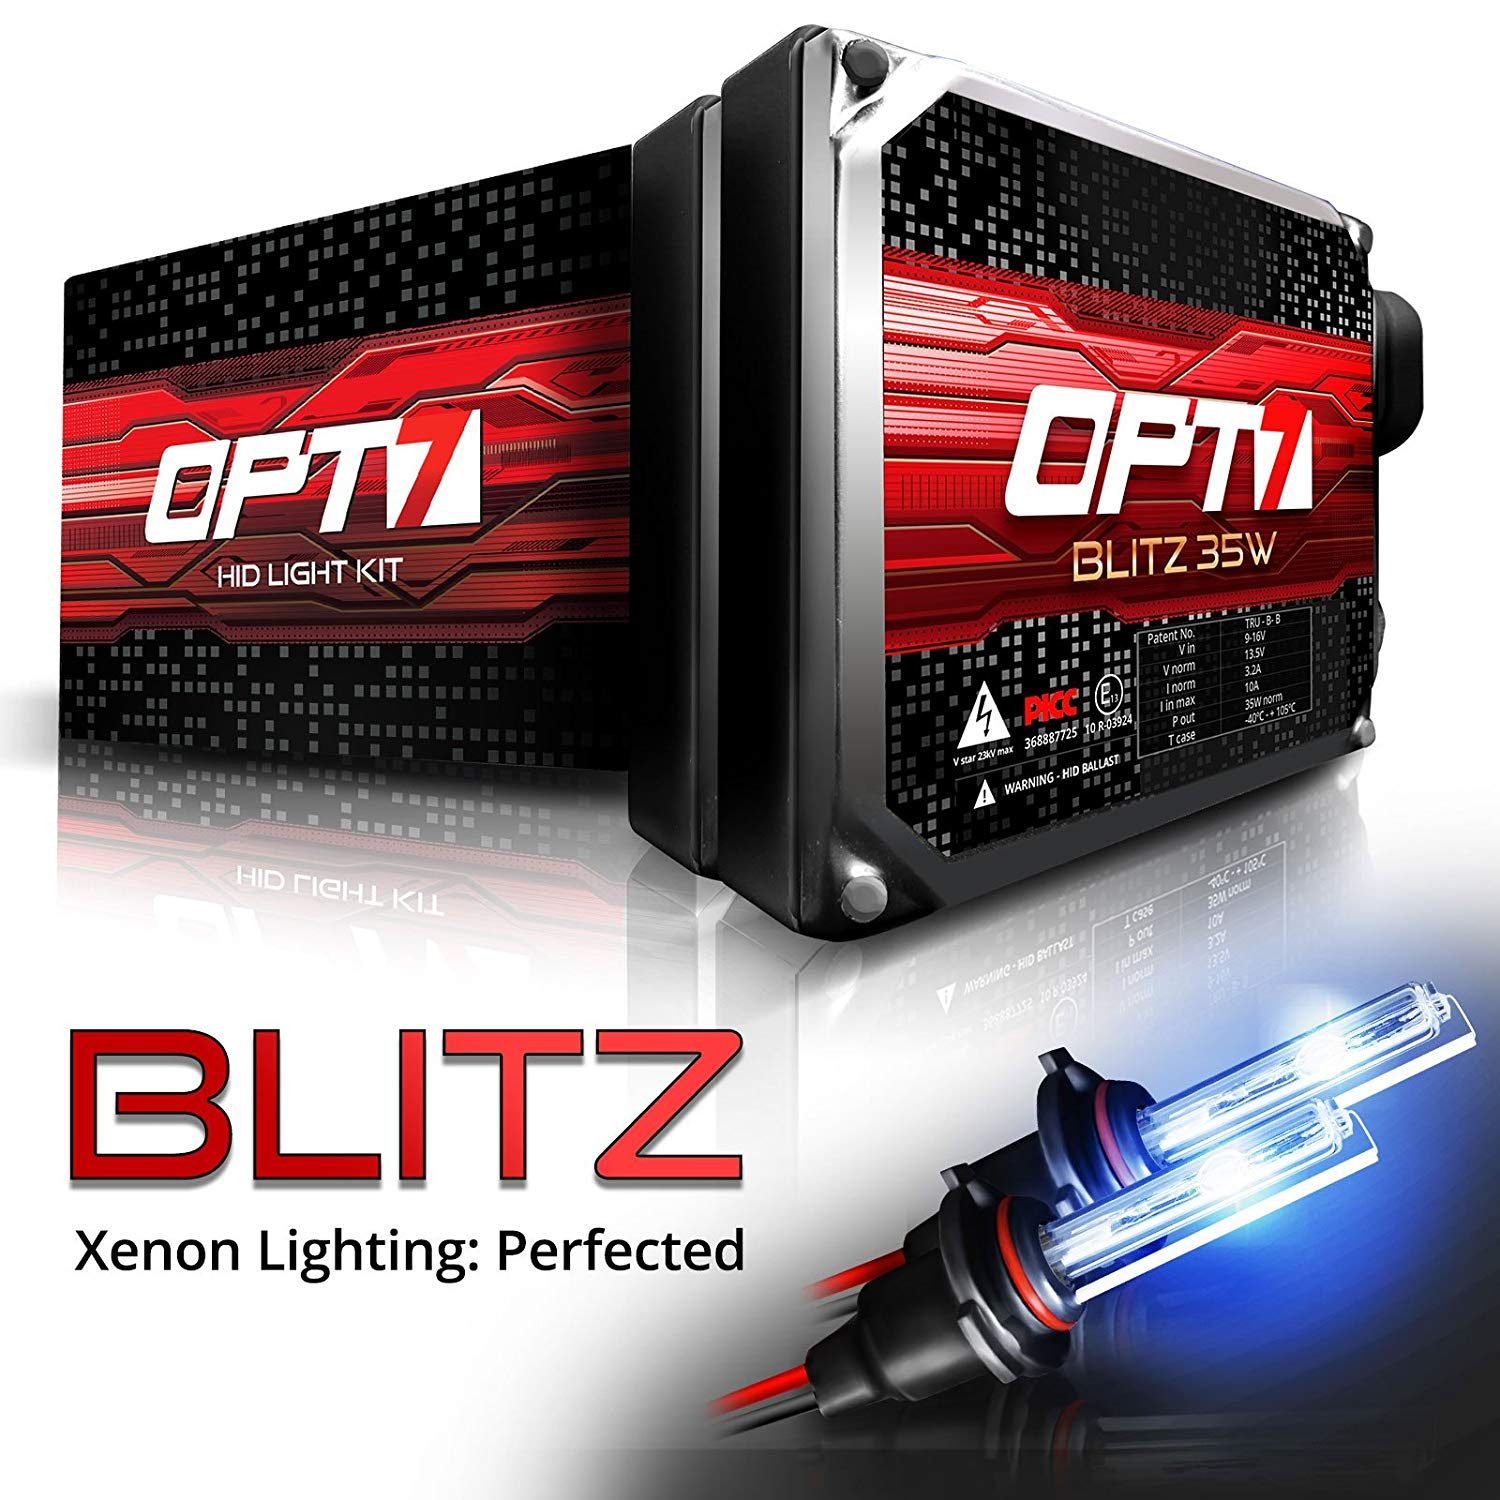 OPT7 Blitz 35w 9006 HID Kit - 3.5X Brighter - 4X Longer Life